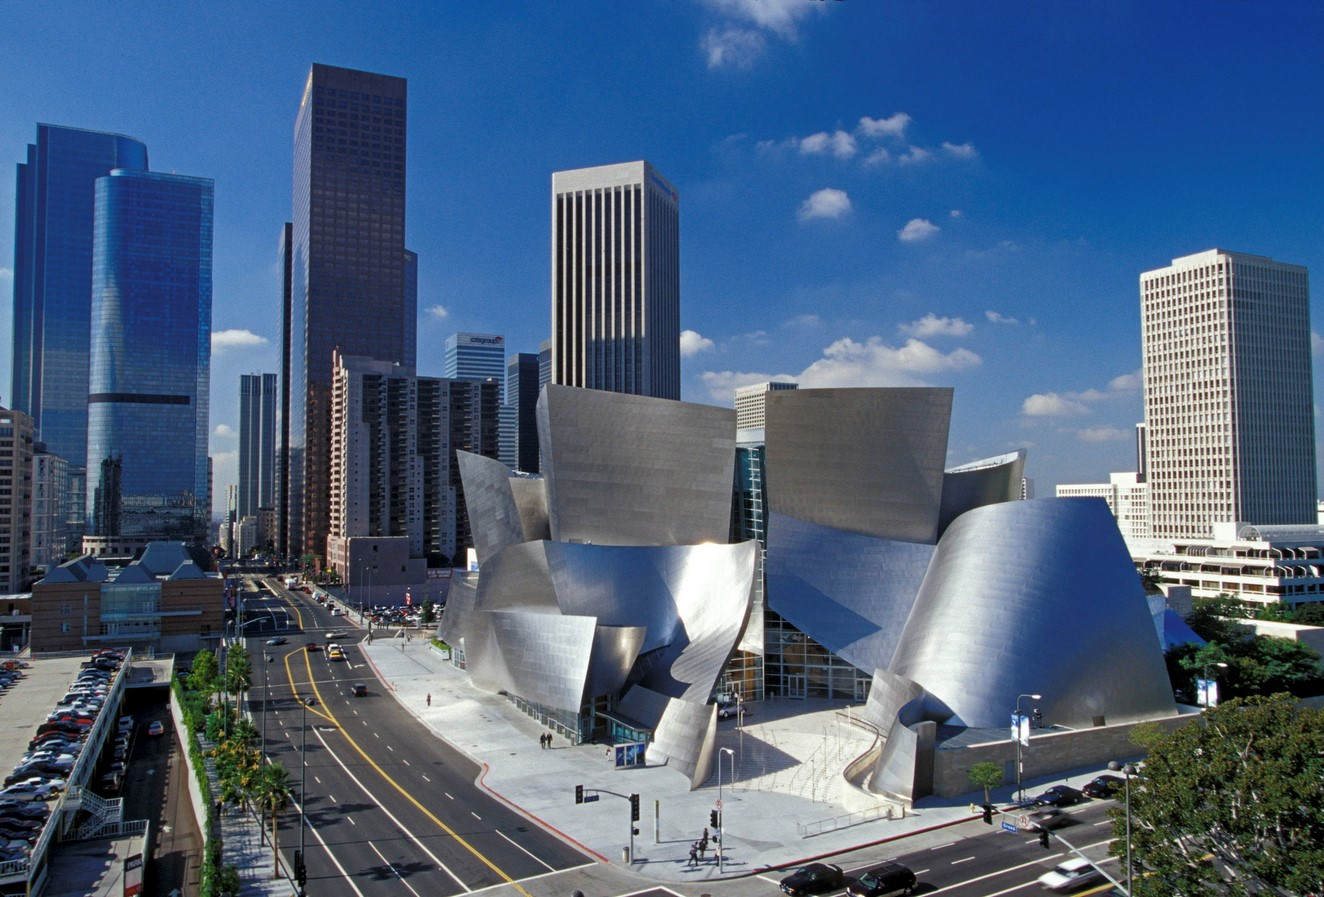 FRANK GEHRY/GEHRY PARTNERS - Sheet2